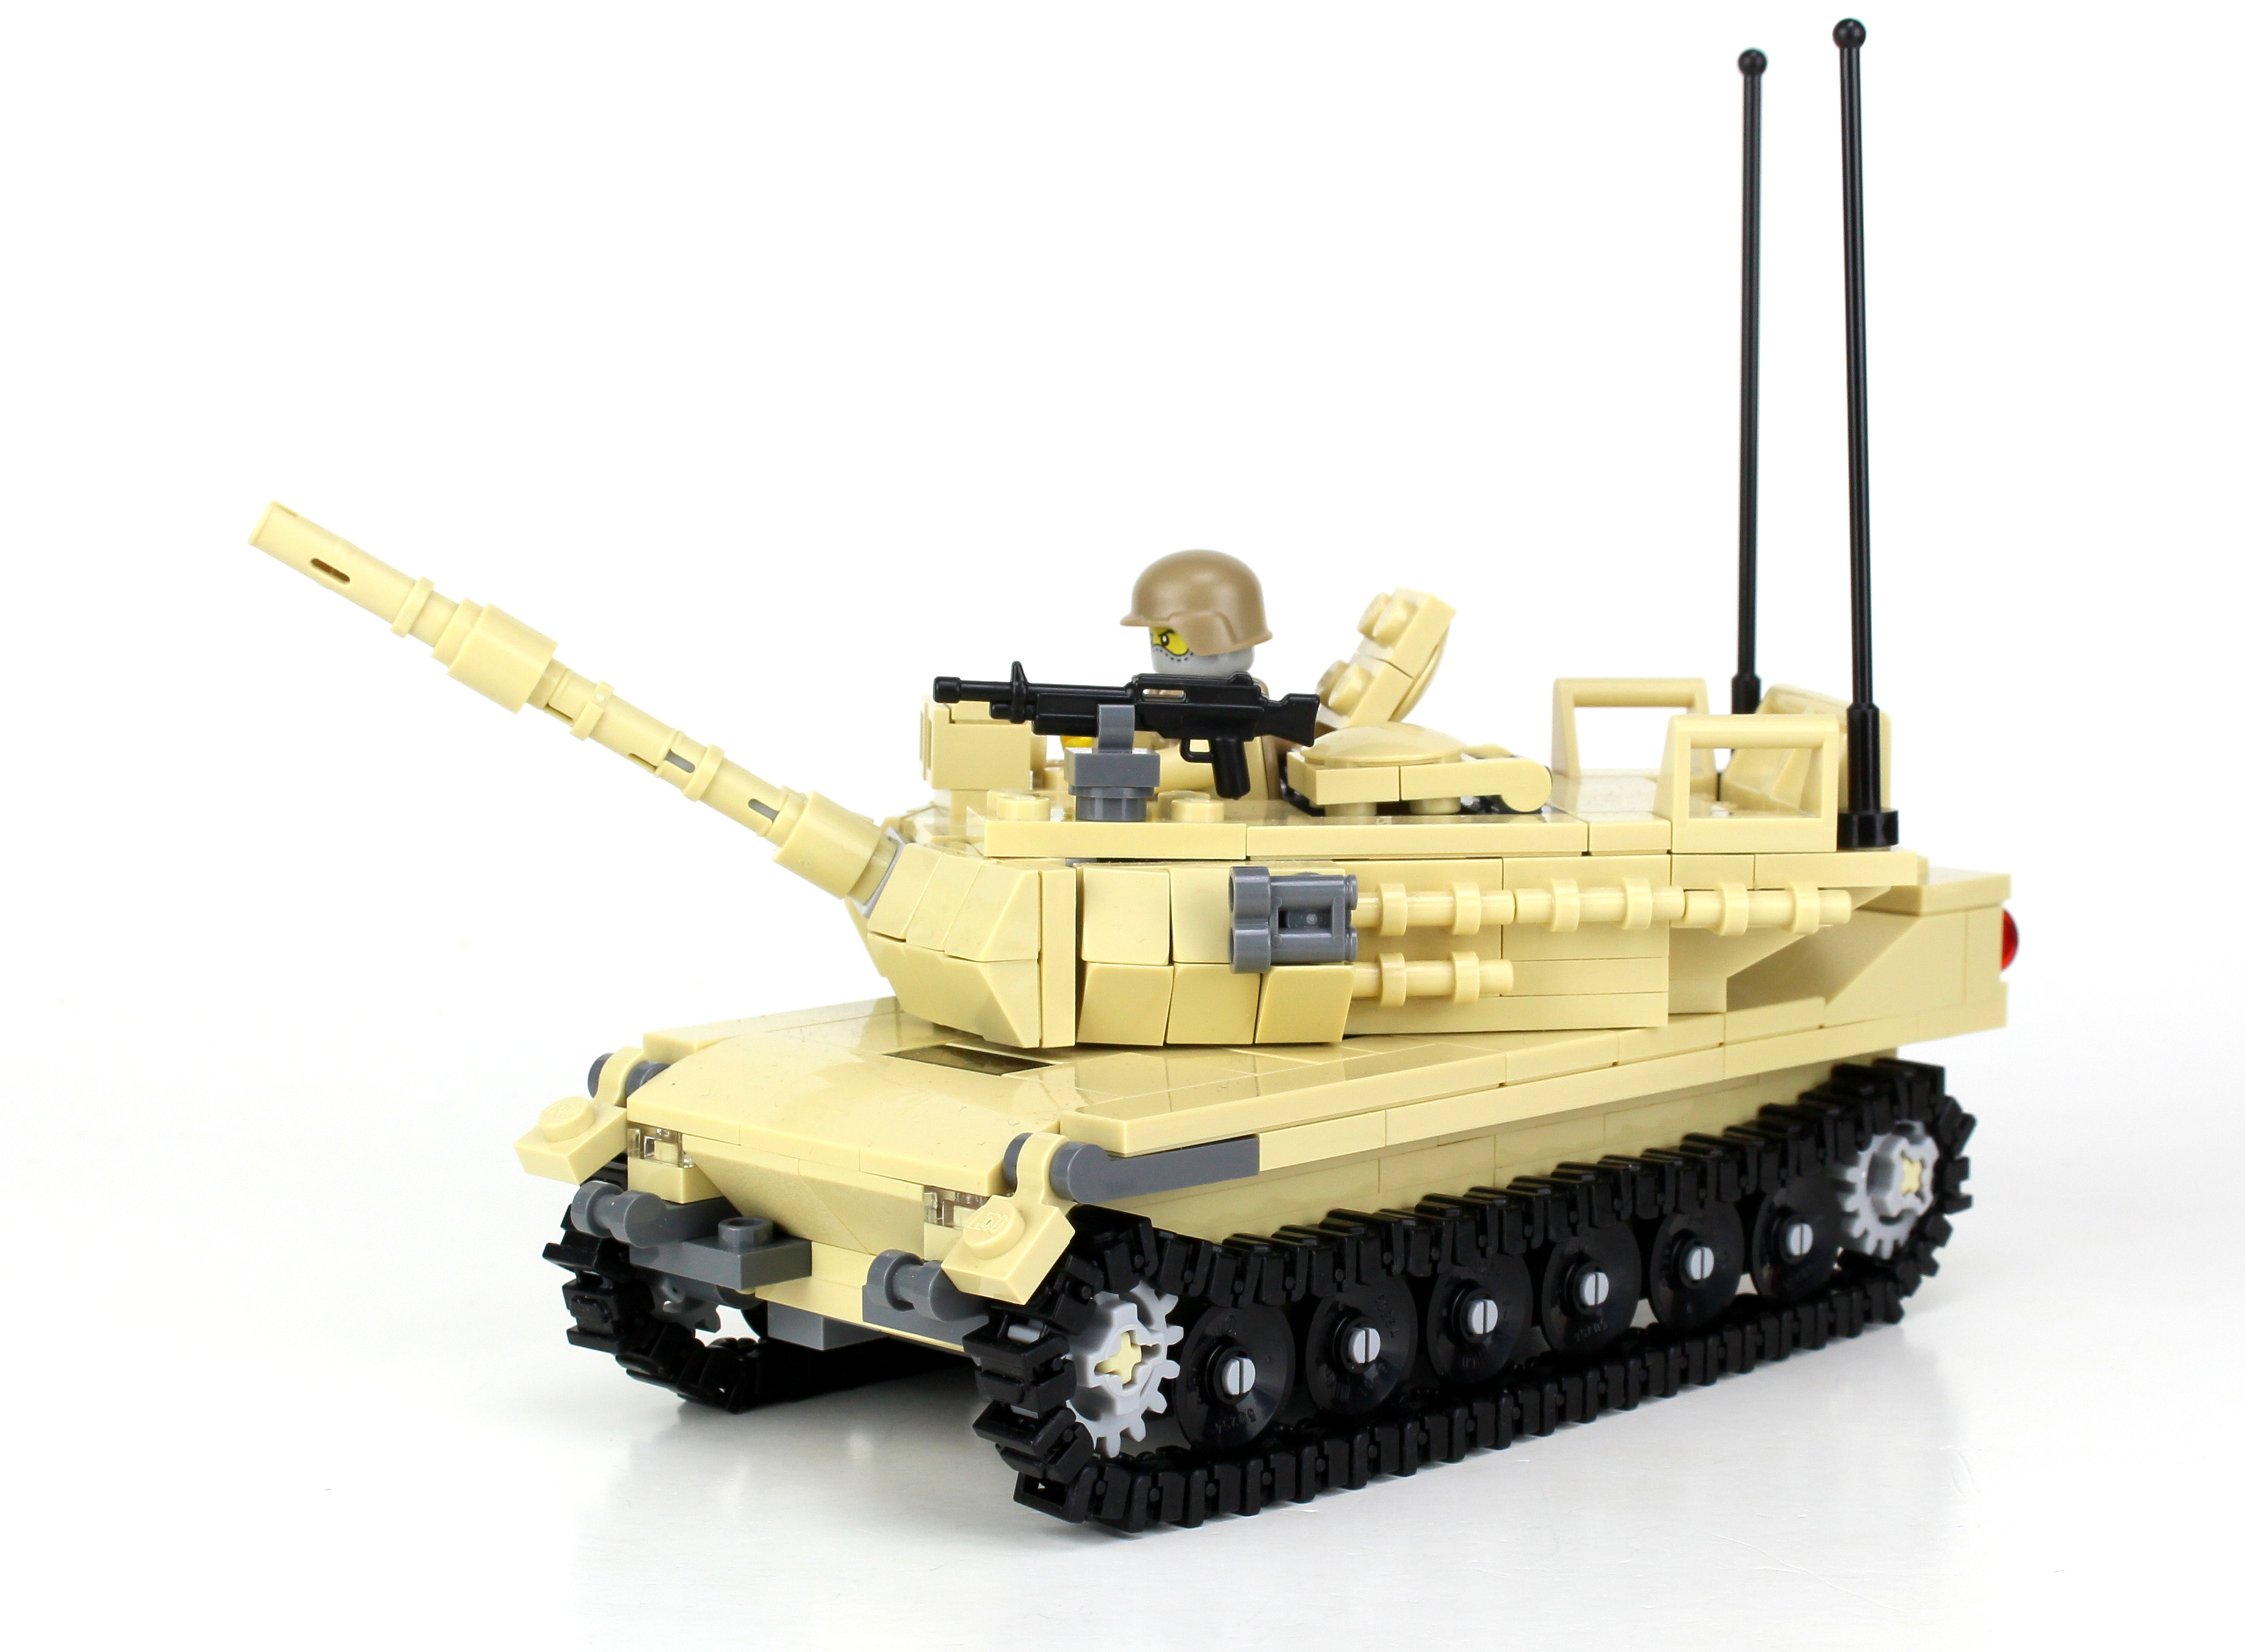 M1 Abrams Main Battle Tank Made With Real Lego Bricks